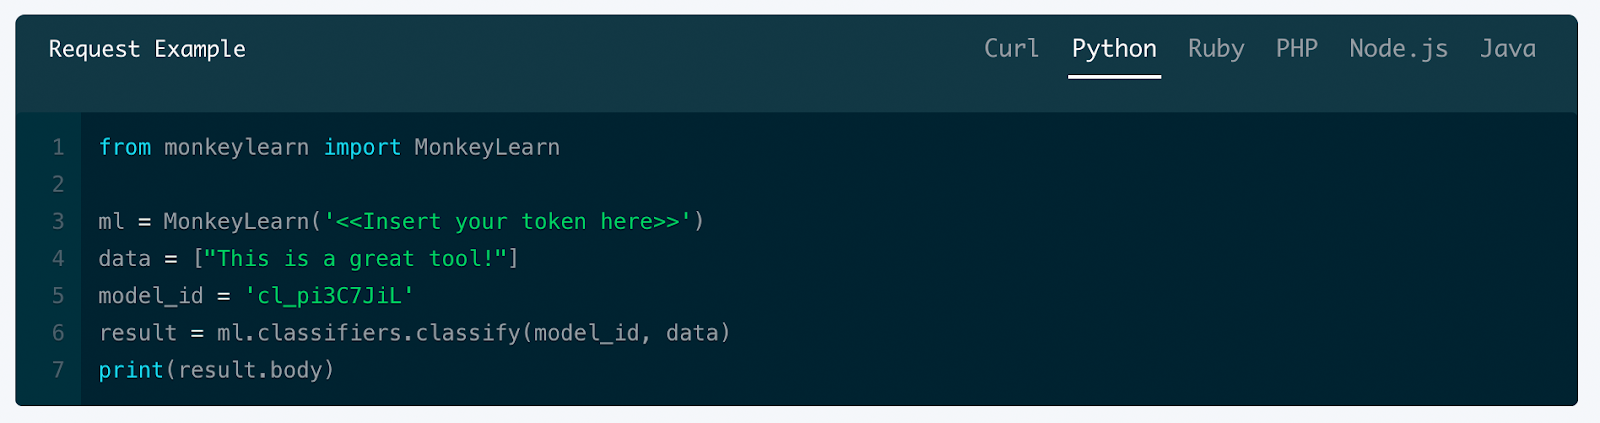 Using the sentiment classifier with MonkeyLearn's API code in Python.